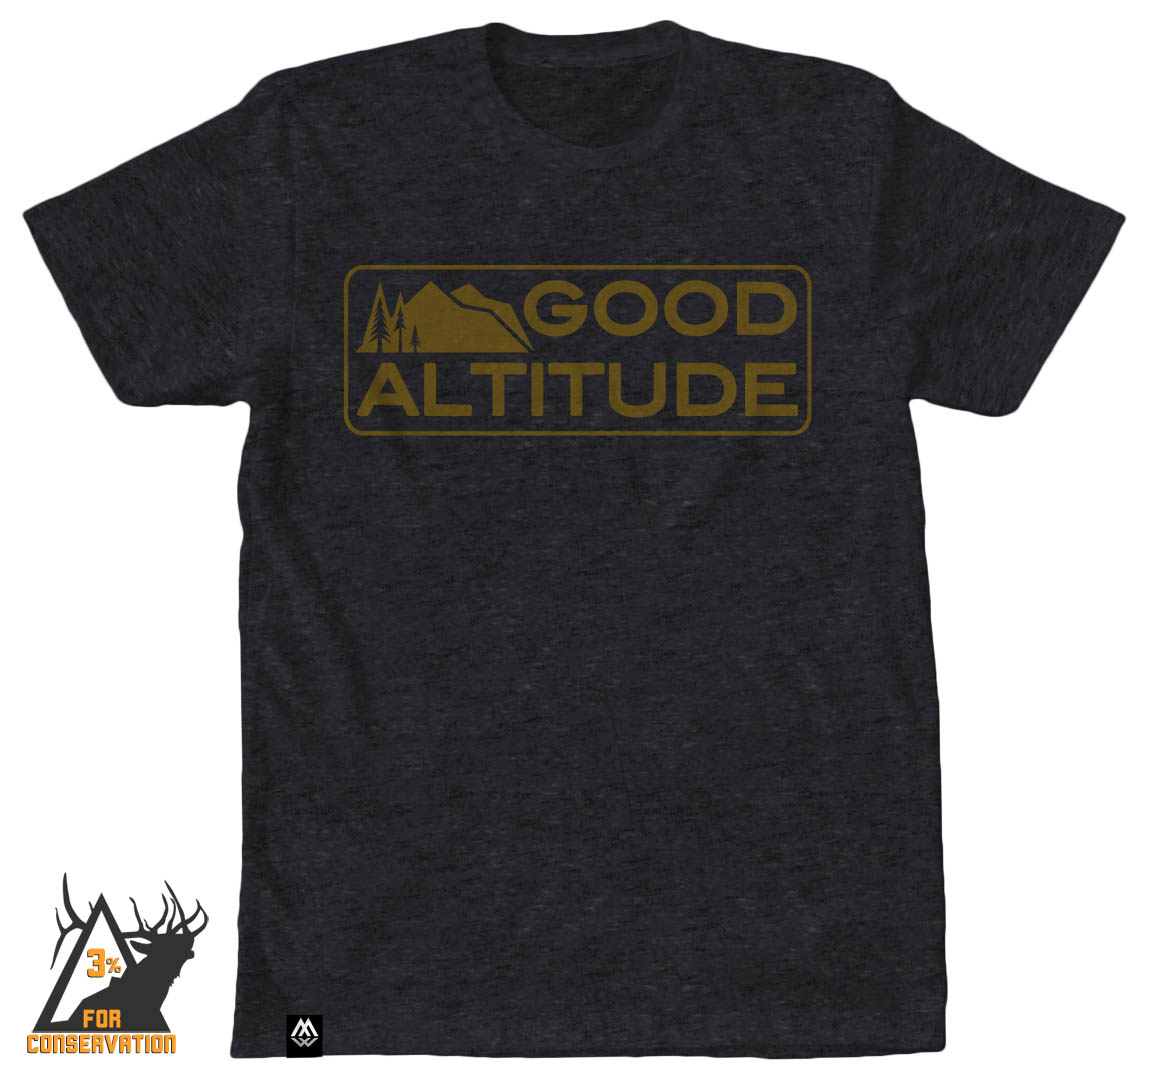 good altitude, elevation, hiking, outdoors, camping, biking, running, hunting, fishing, trail, camp, tee, shirt, bozeman, good altitude apparel